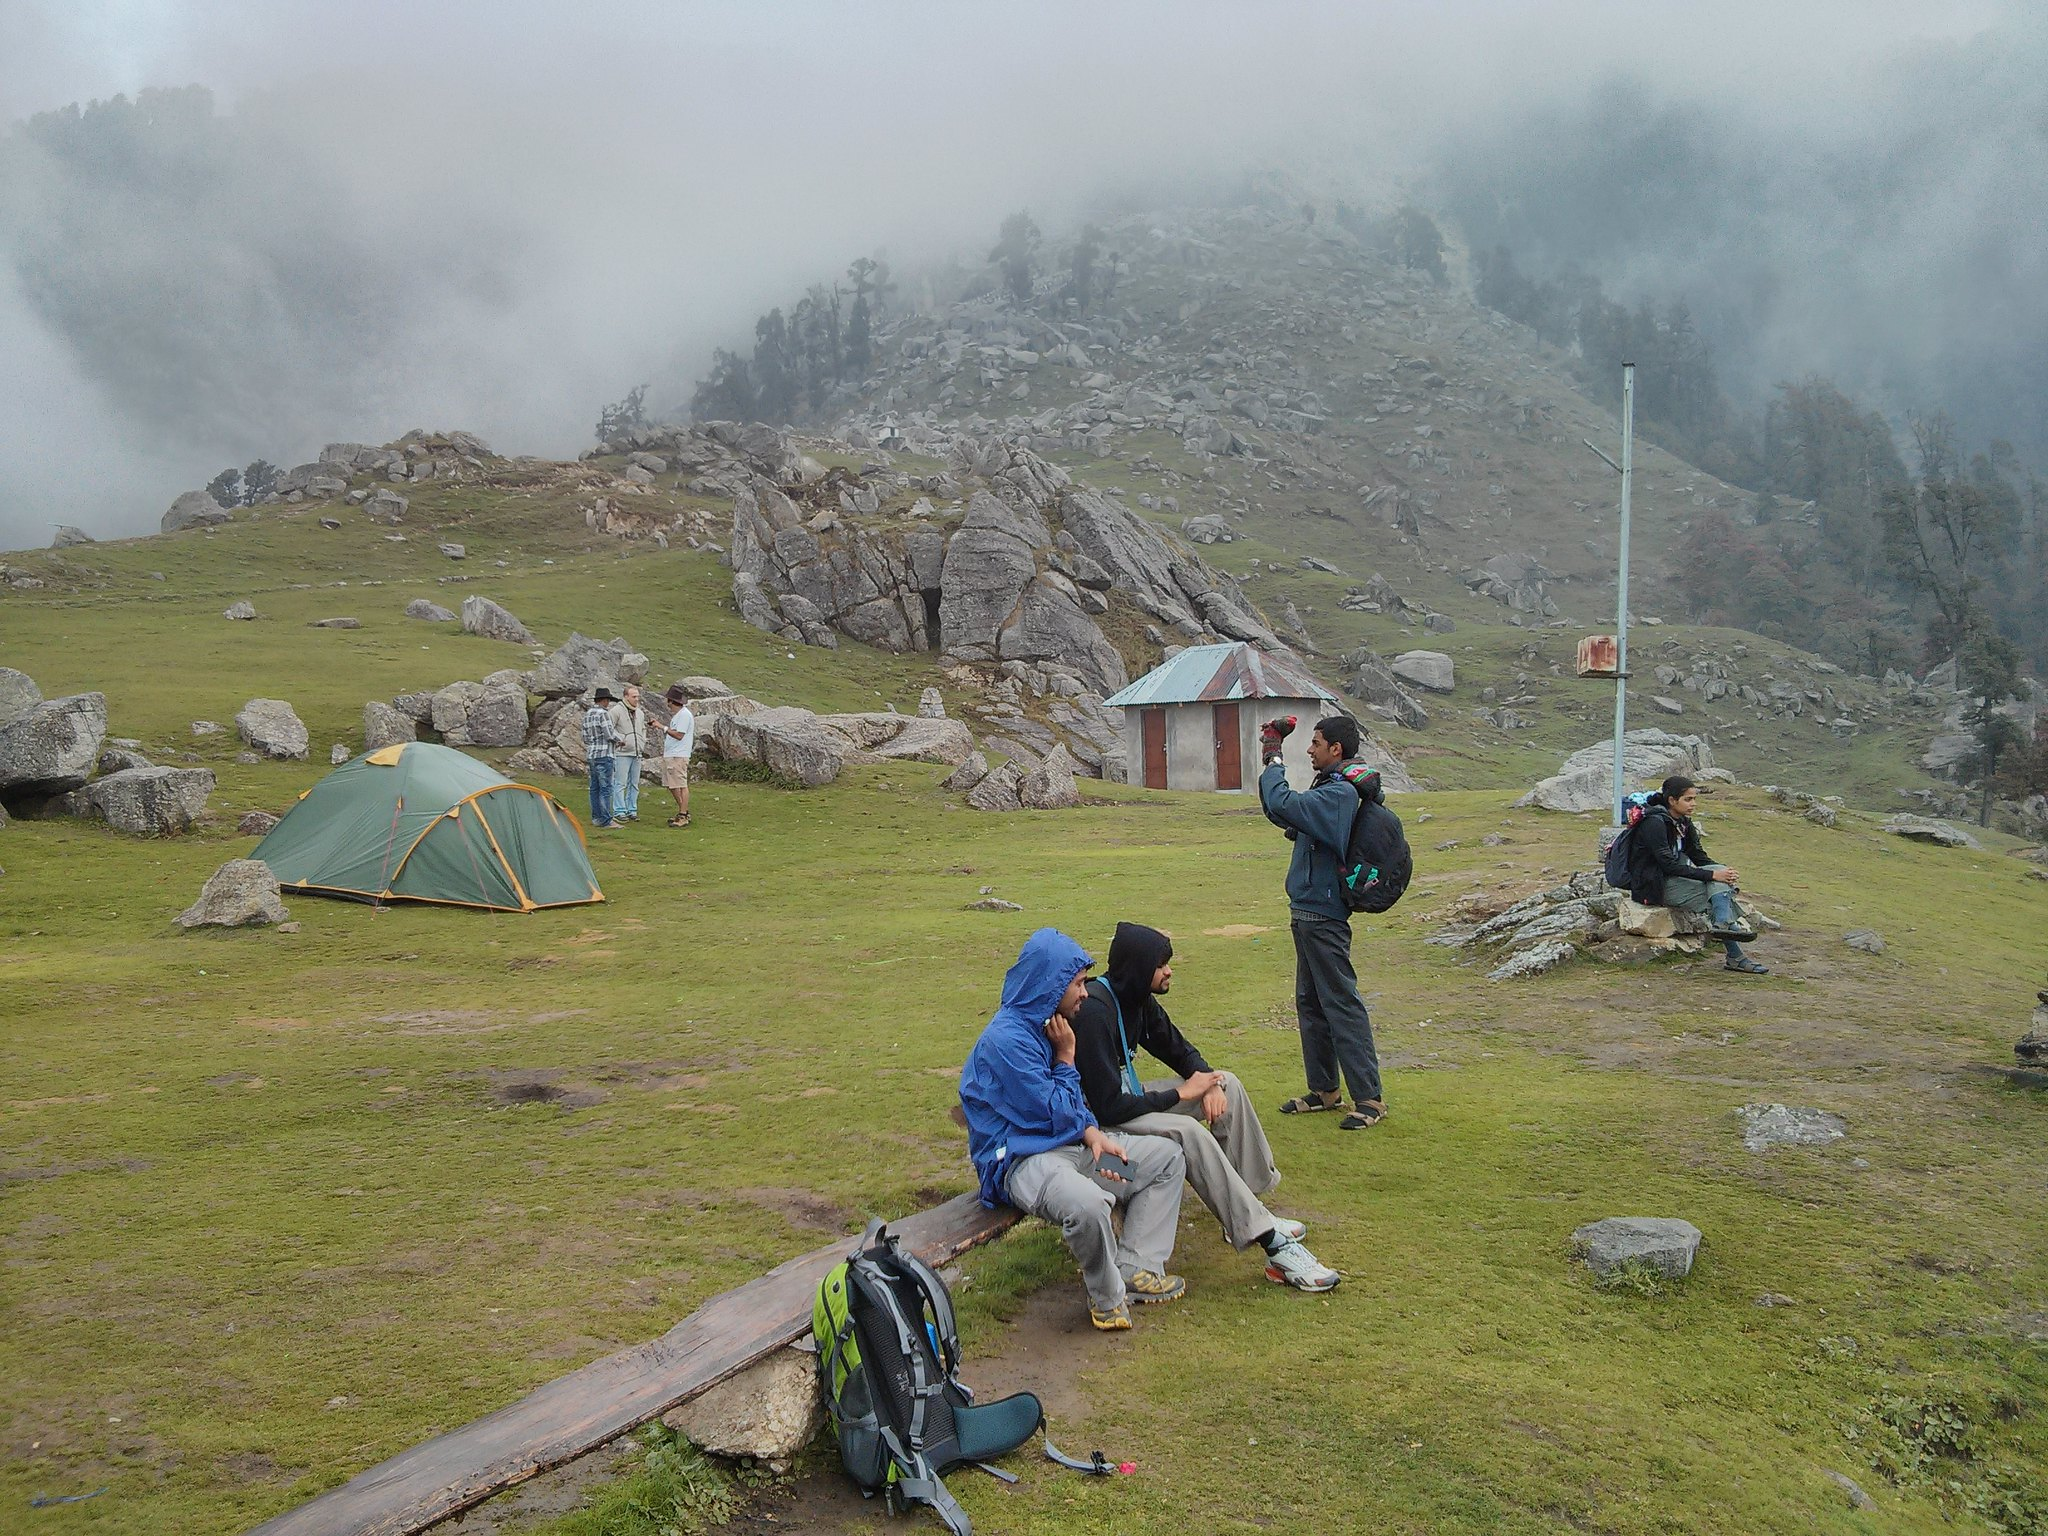 Triund Hill - Must-Visit Place in Dharamshala and McLeodganj